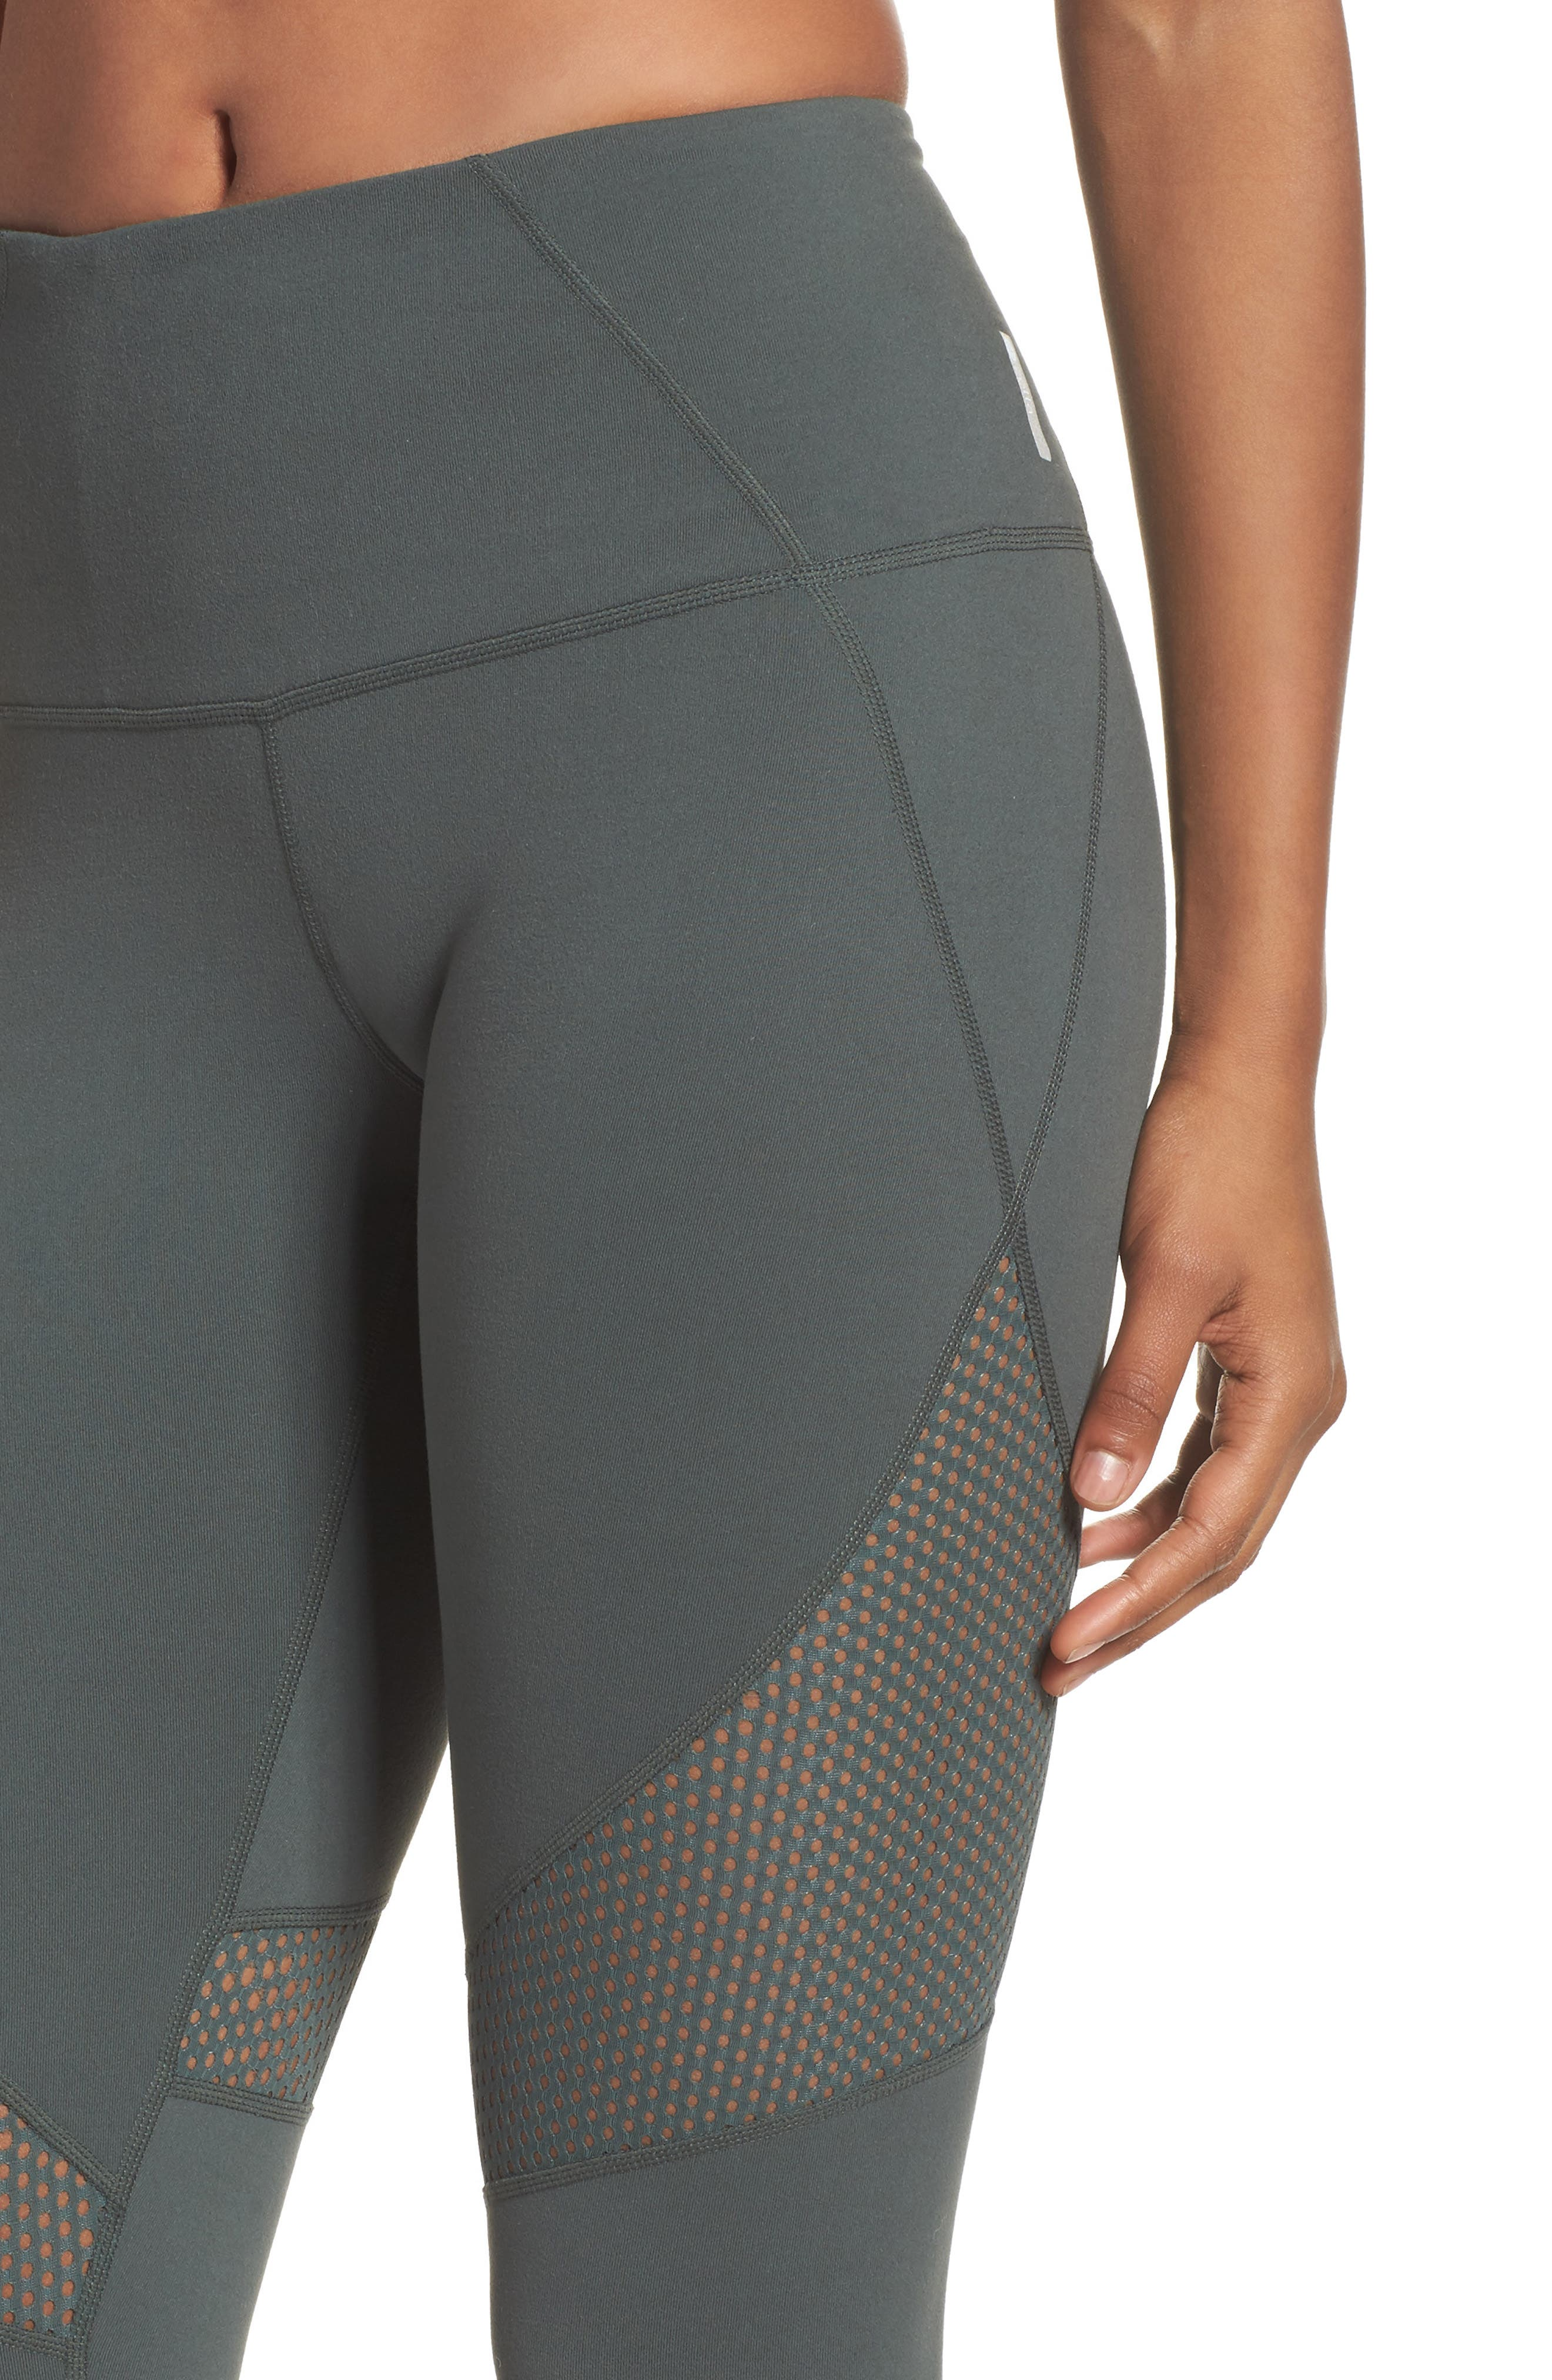 Out of Bounds High Waist Leggings,                             Alternate thumbnail 4, color,                             Grey Urban